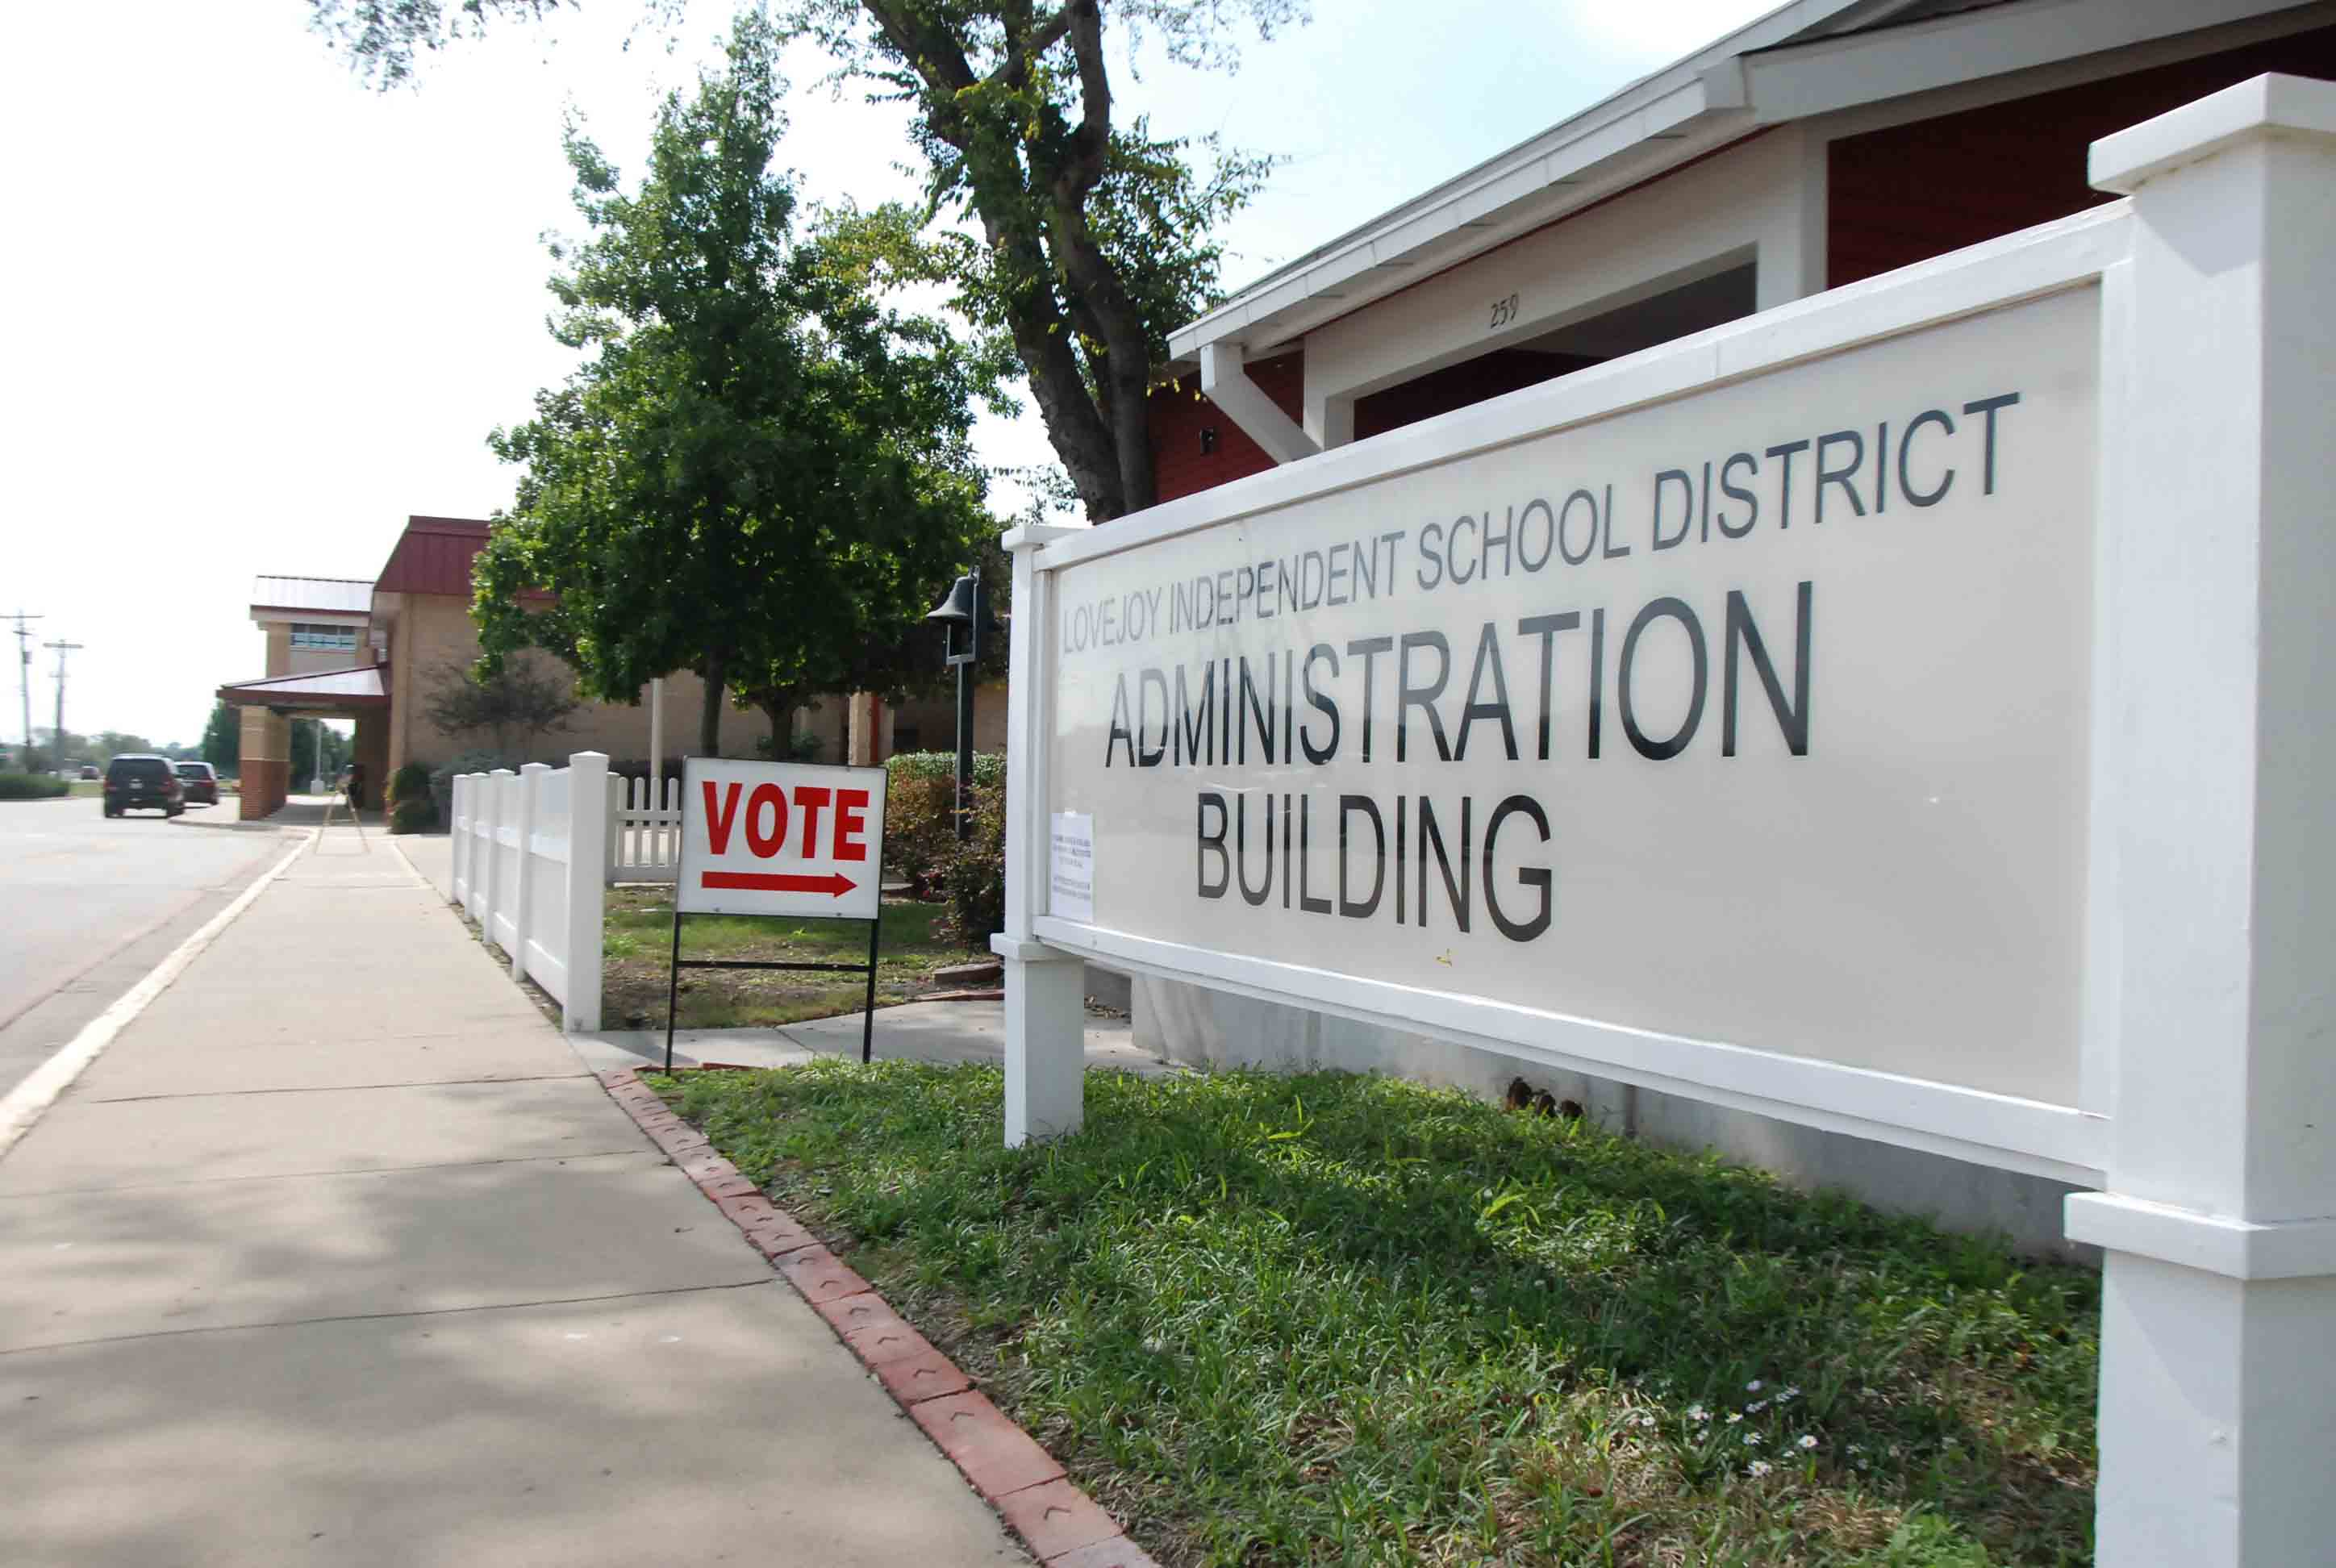 Early voting ends today for the LISD Bond Election.  The polls are open today in the Administration Building   until 7:00 p.m. On Election Day, the polls are open from 7:00 a.m. to 7:00 p.m. in the gymnasium at Lovejoy Elementary School.